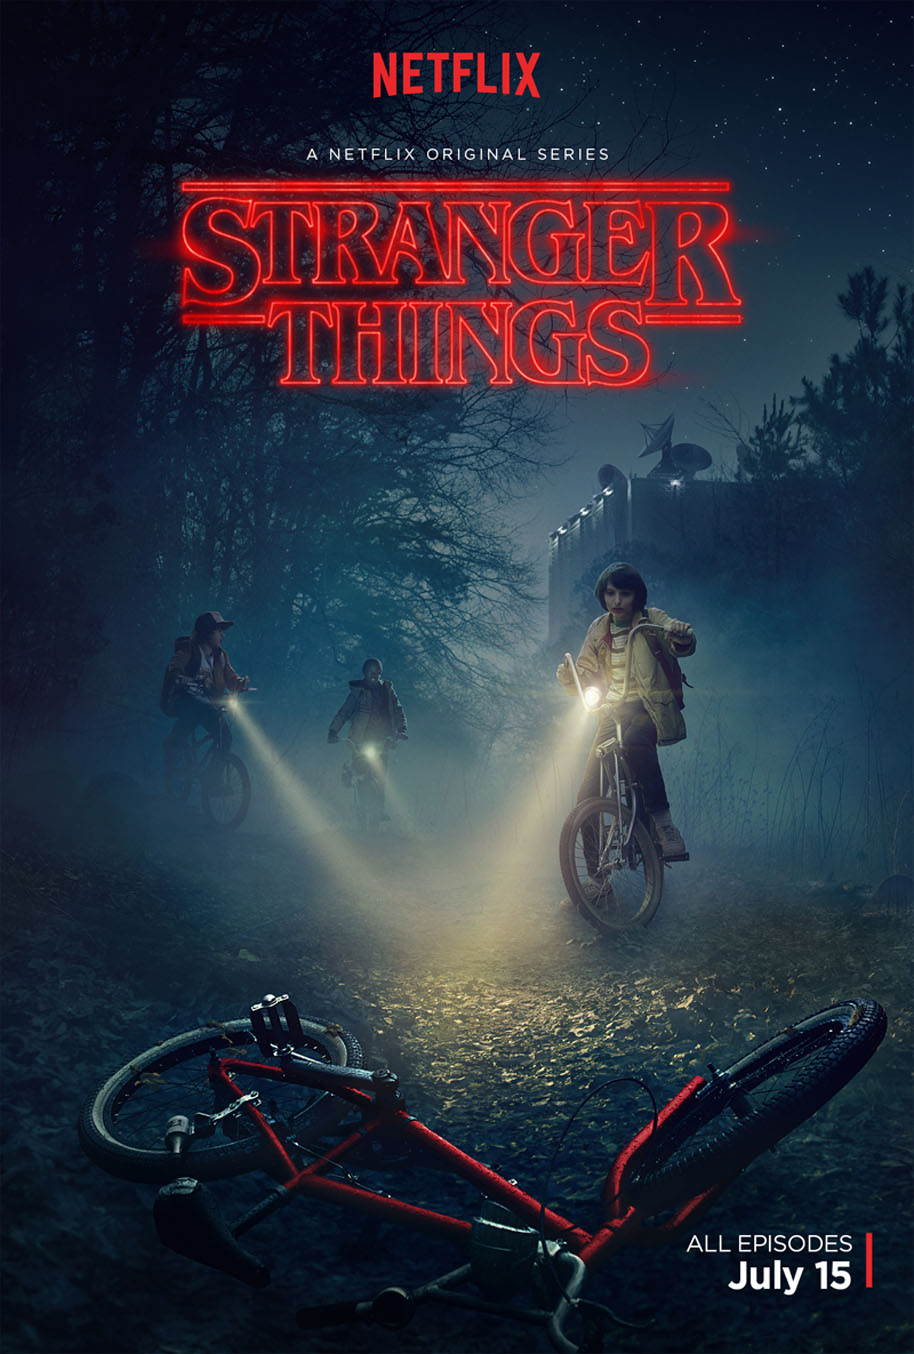 Stranger Things - poster - Netflix